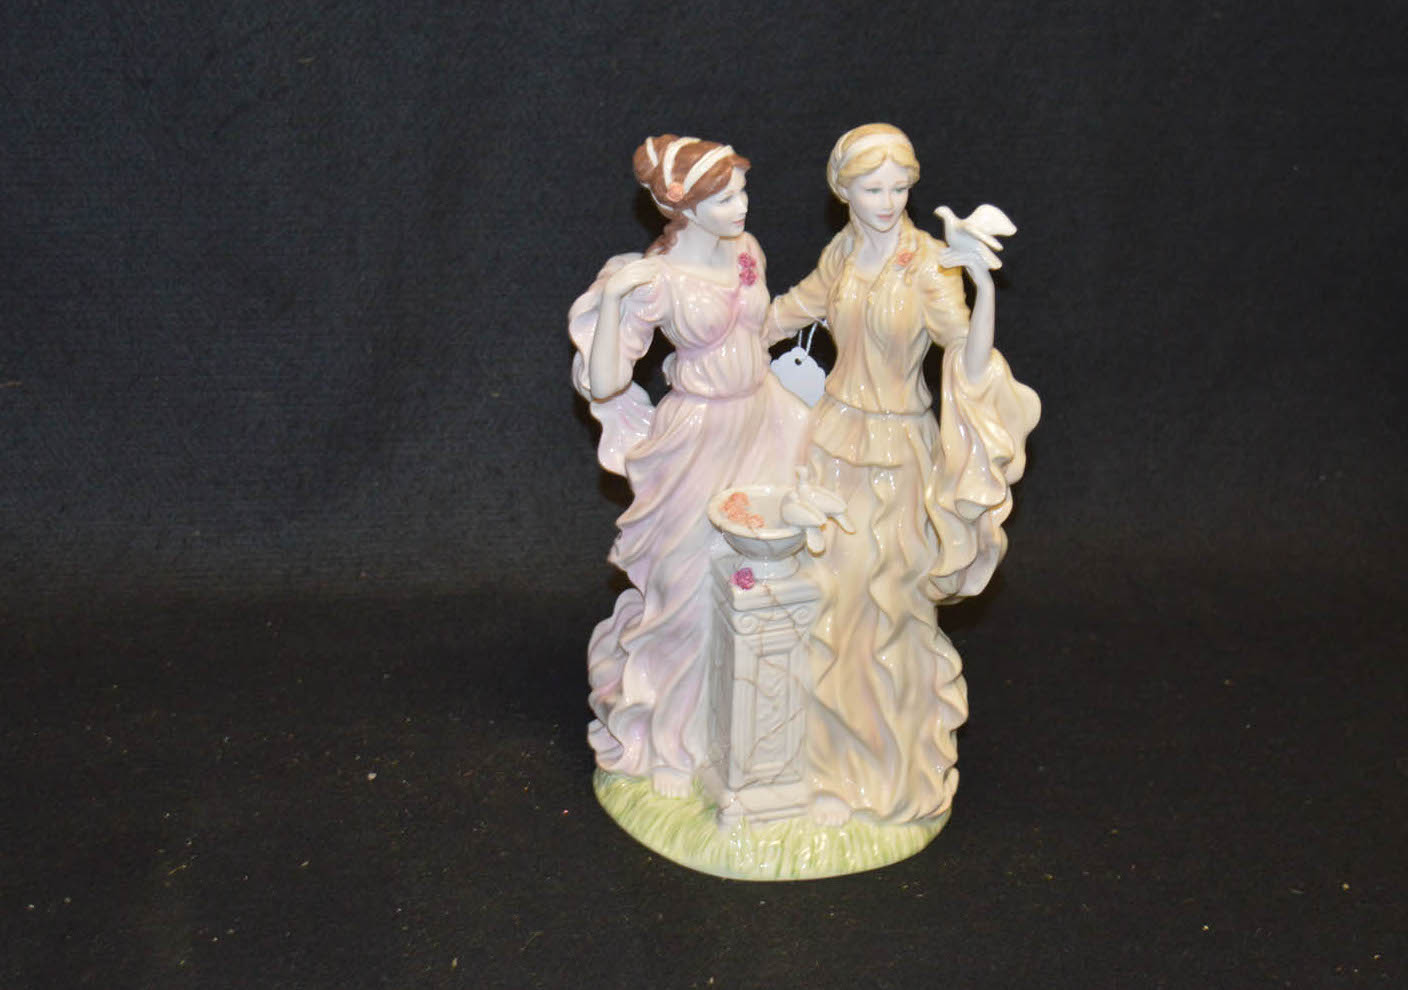 Lot 32 - A Limited Edition Wedgwood Figurine 'Peace and Friendship'